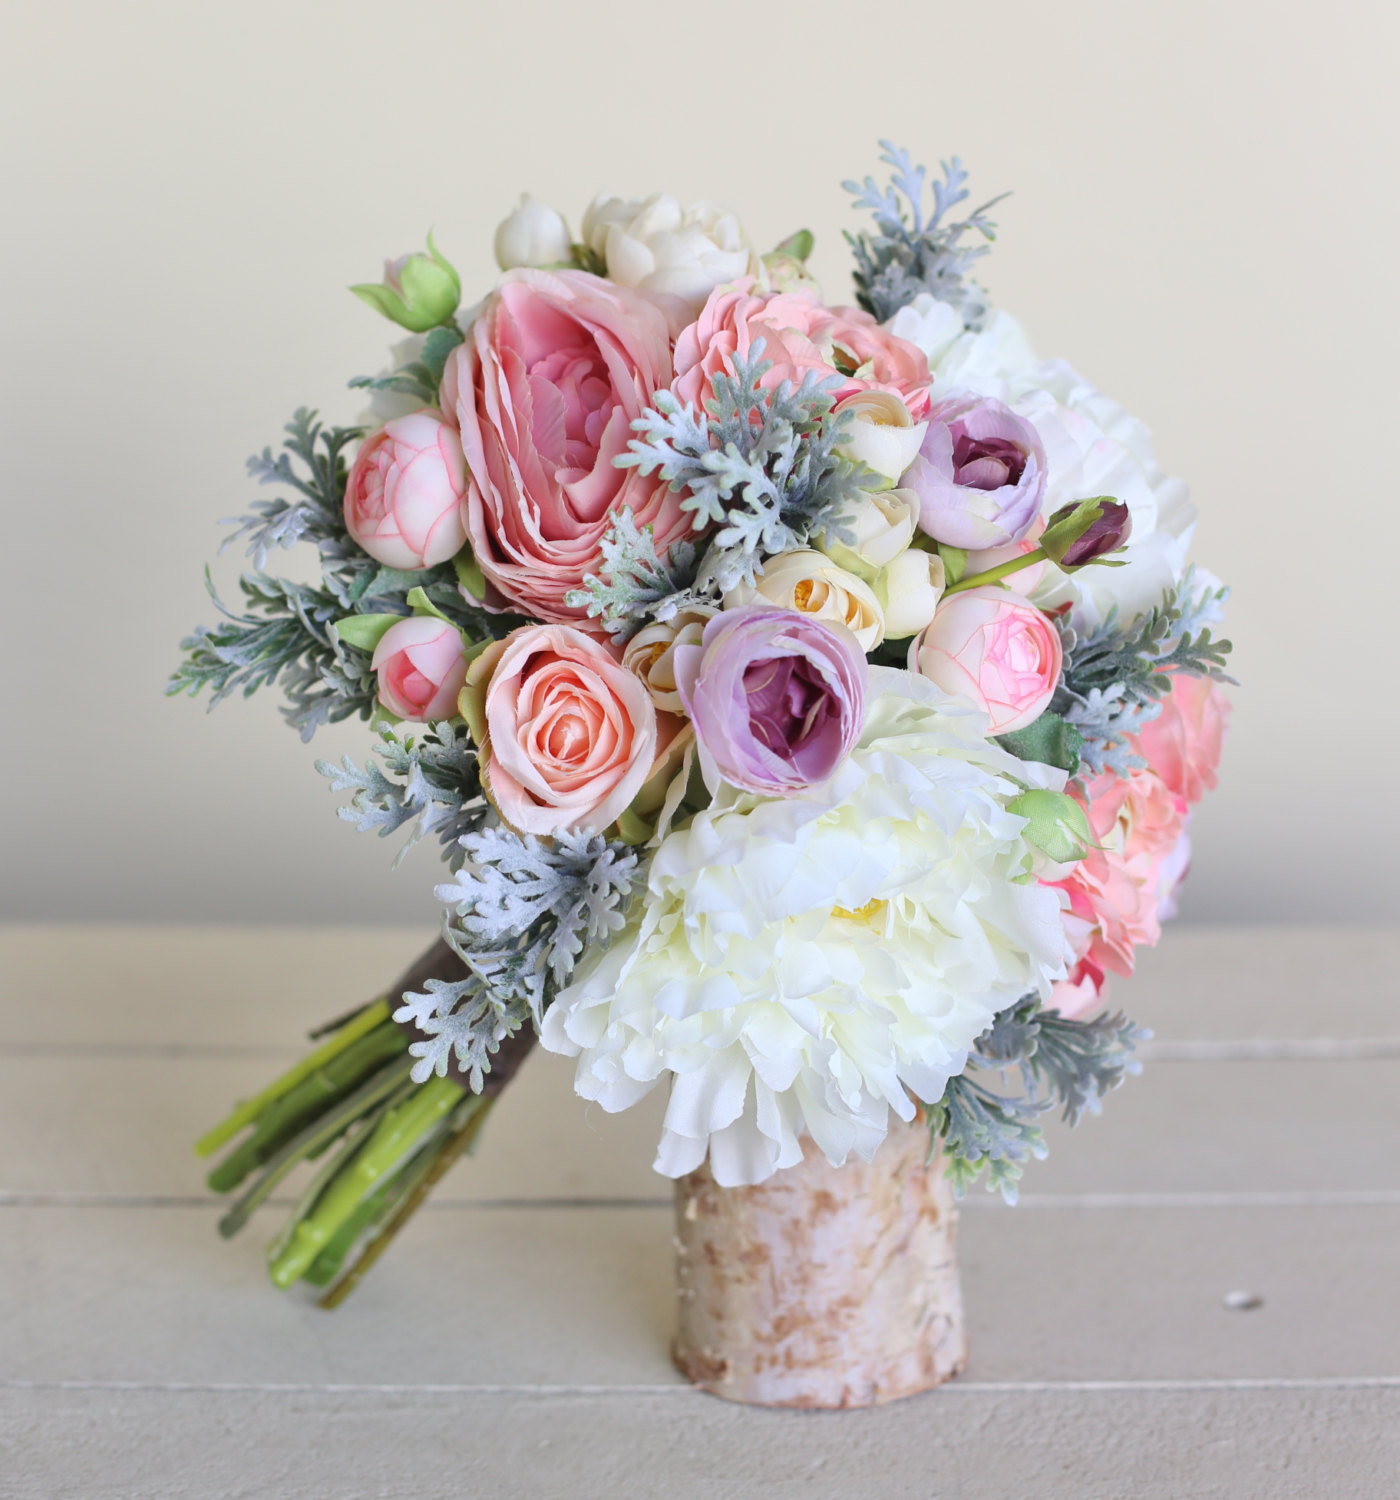 Wedding bridal bouquet inspiration modwedding for Wedding flowers ideas pictures